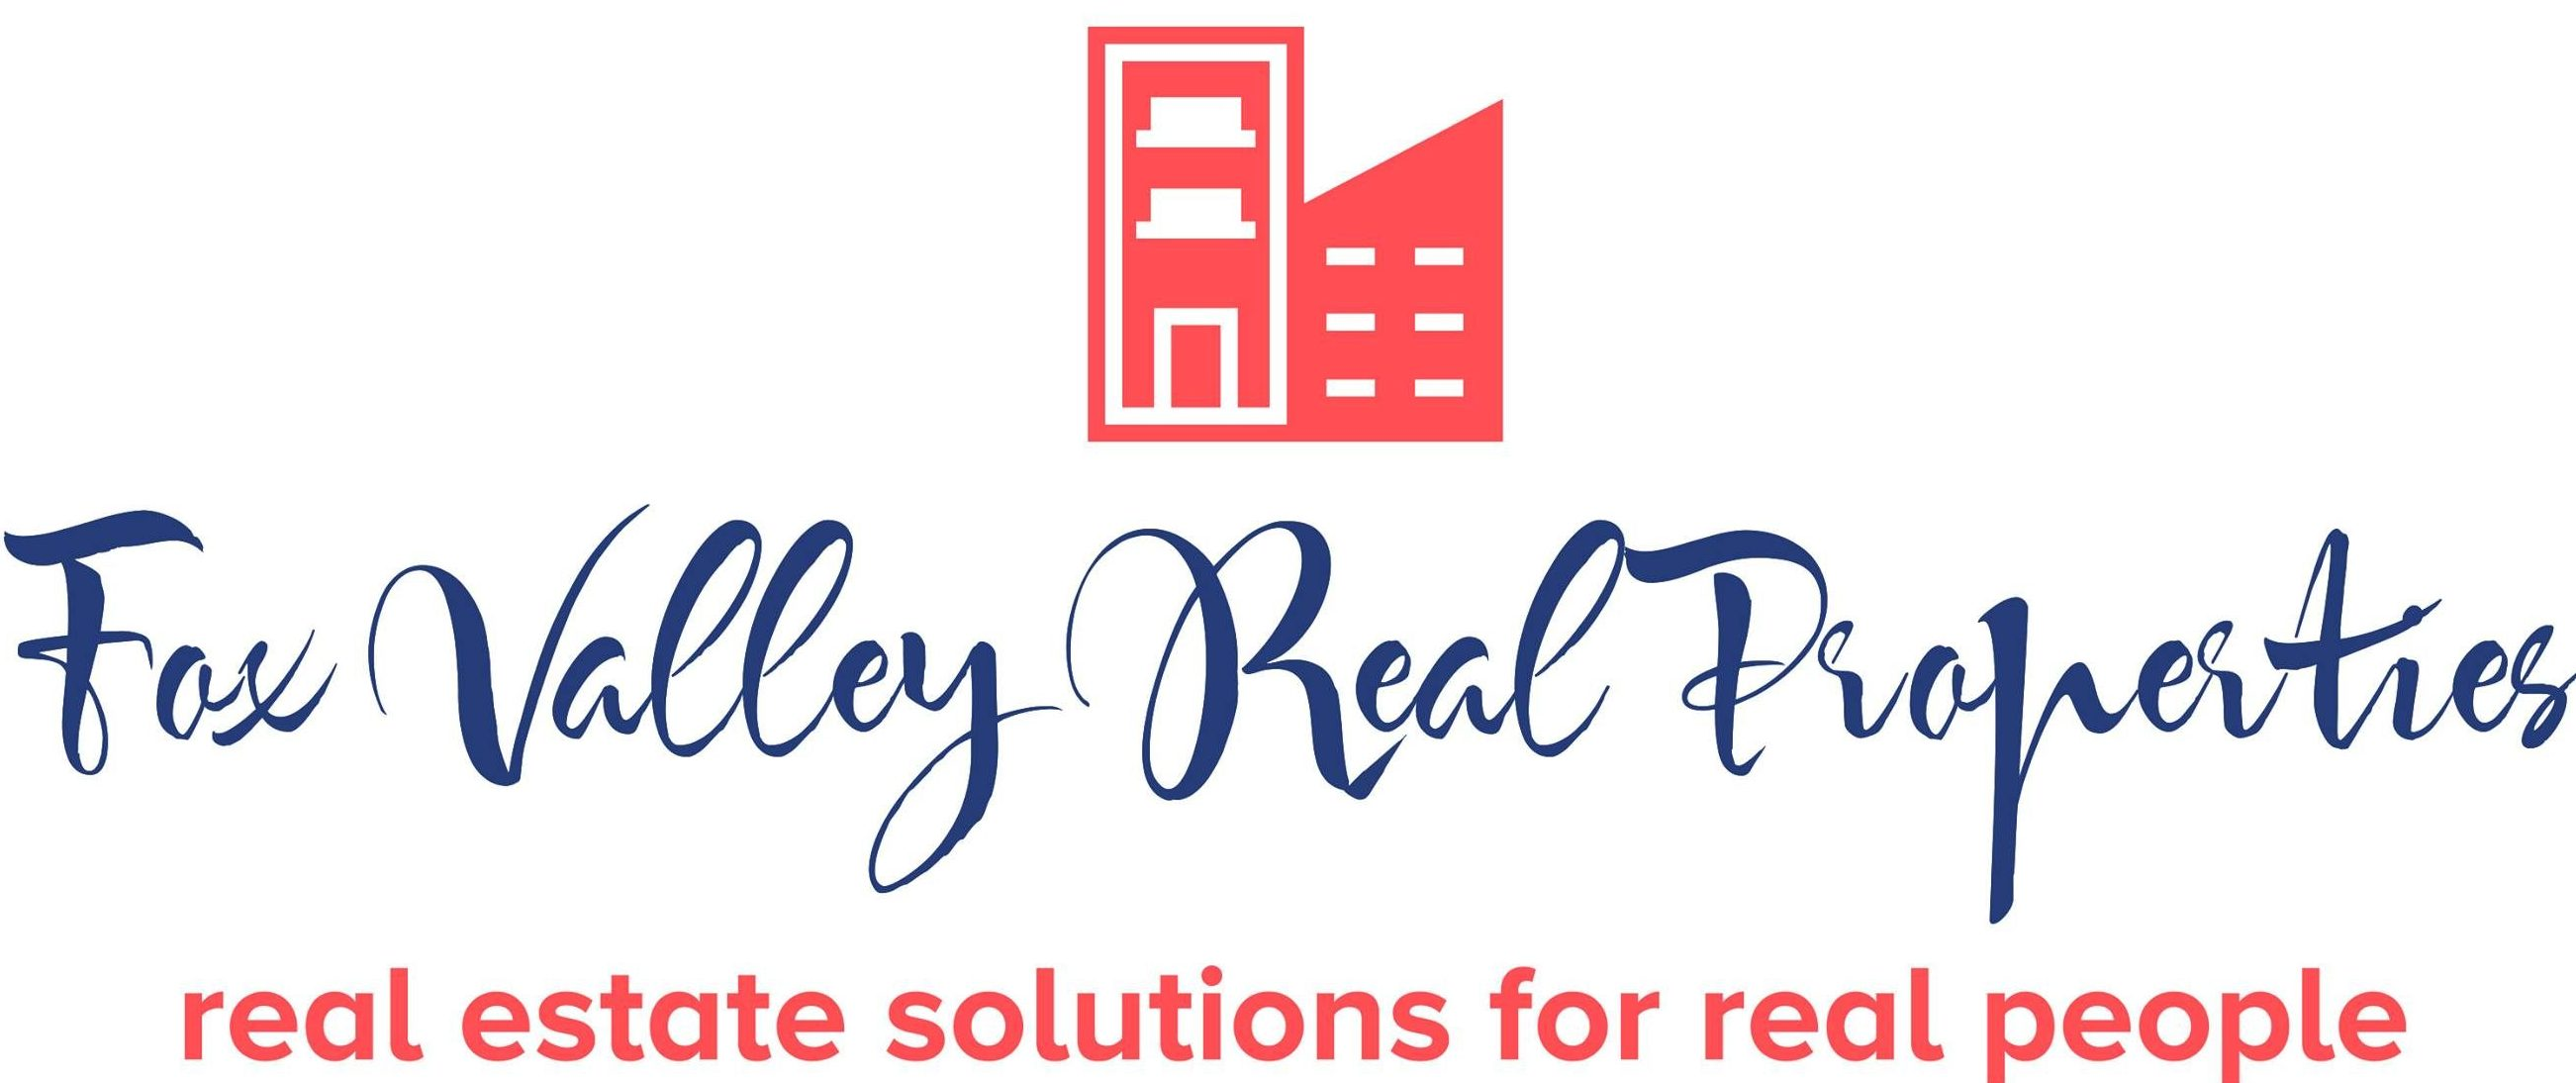 Fox Valley Real Properties